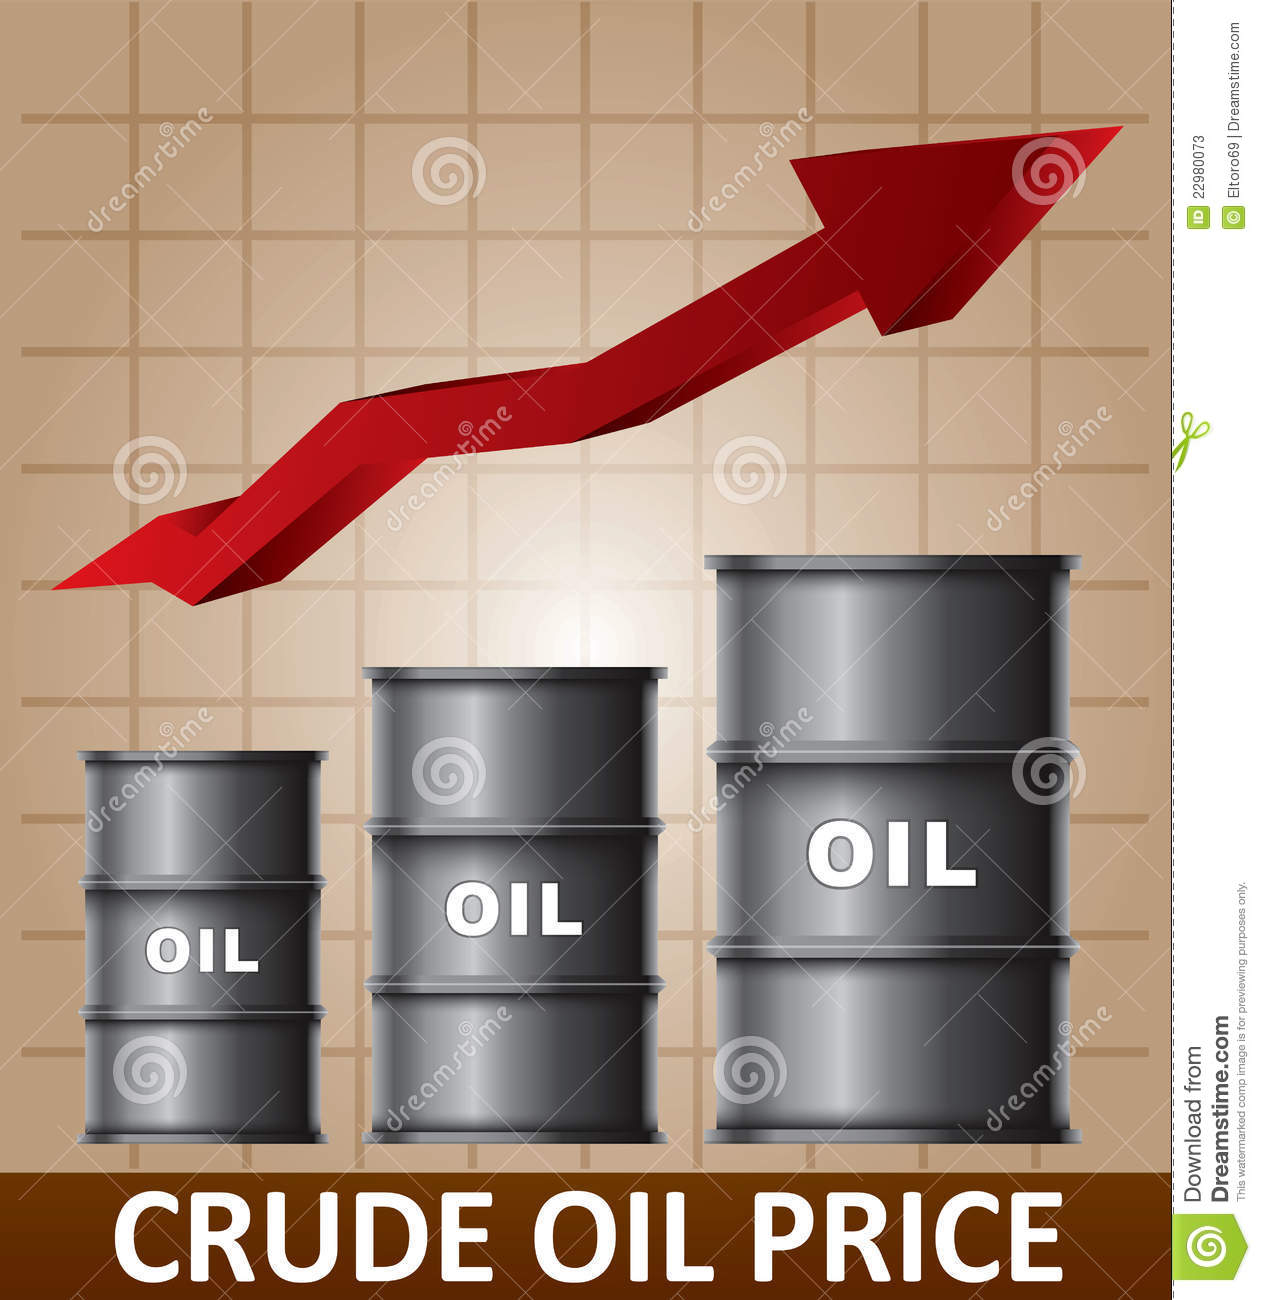 Oil Stock Quote: Crude Oil Price Rise Stock Vector. Image Of Work, Fuel